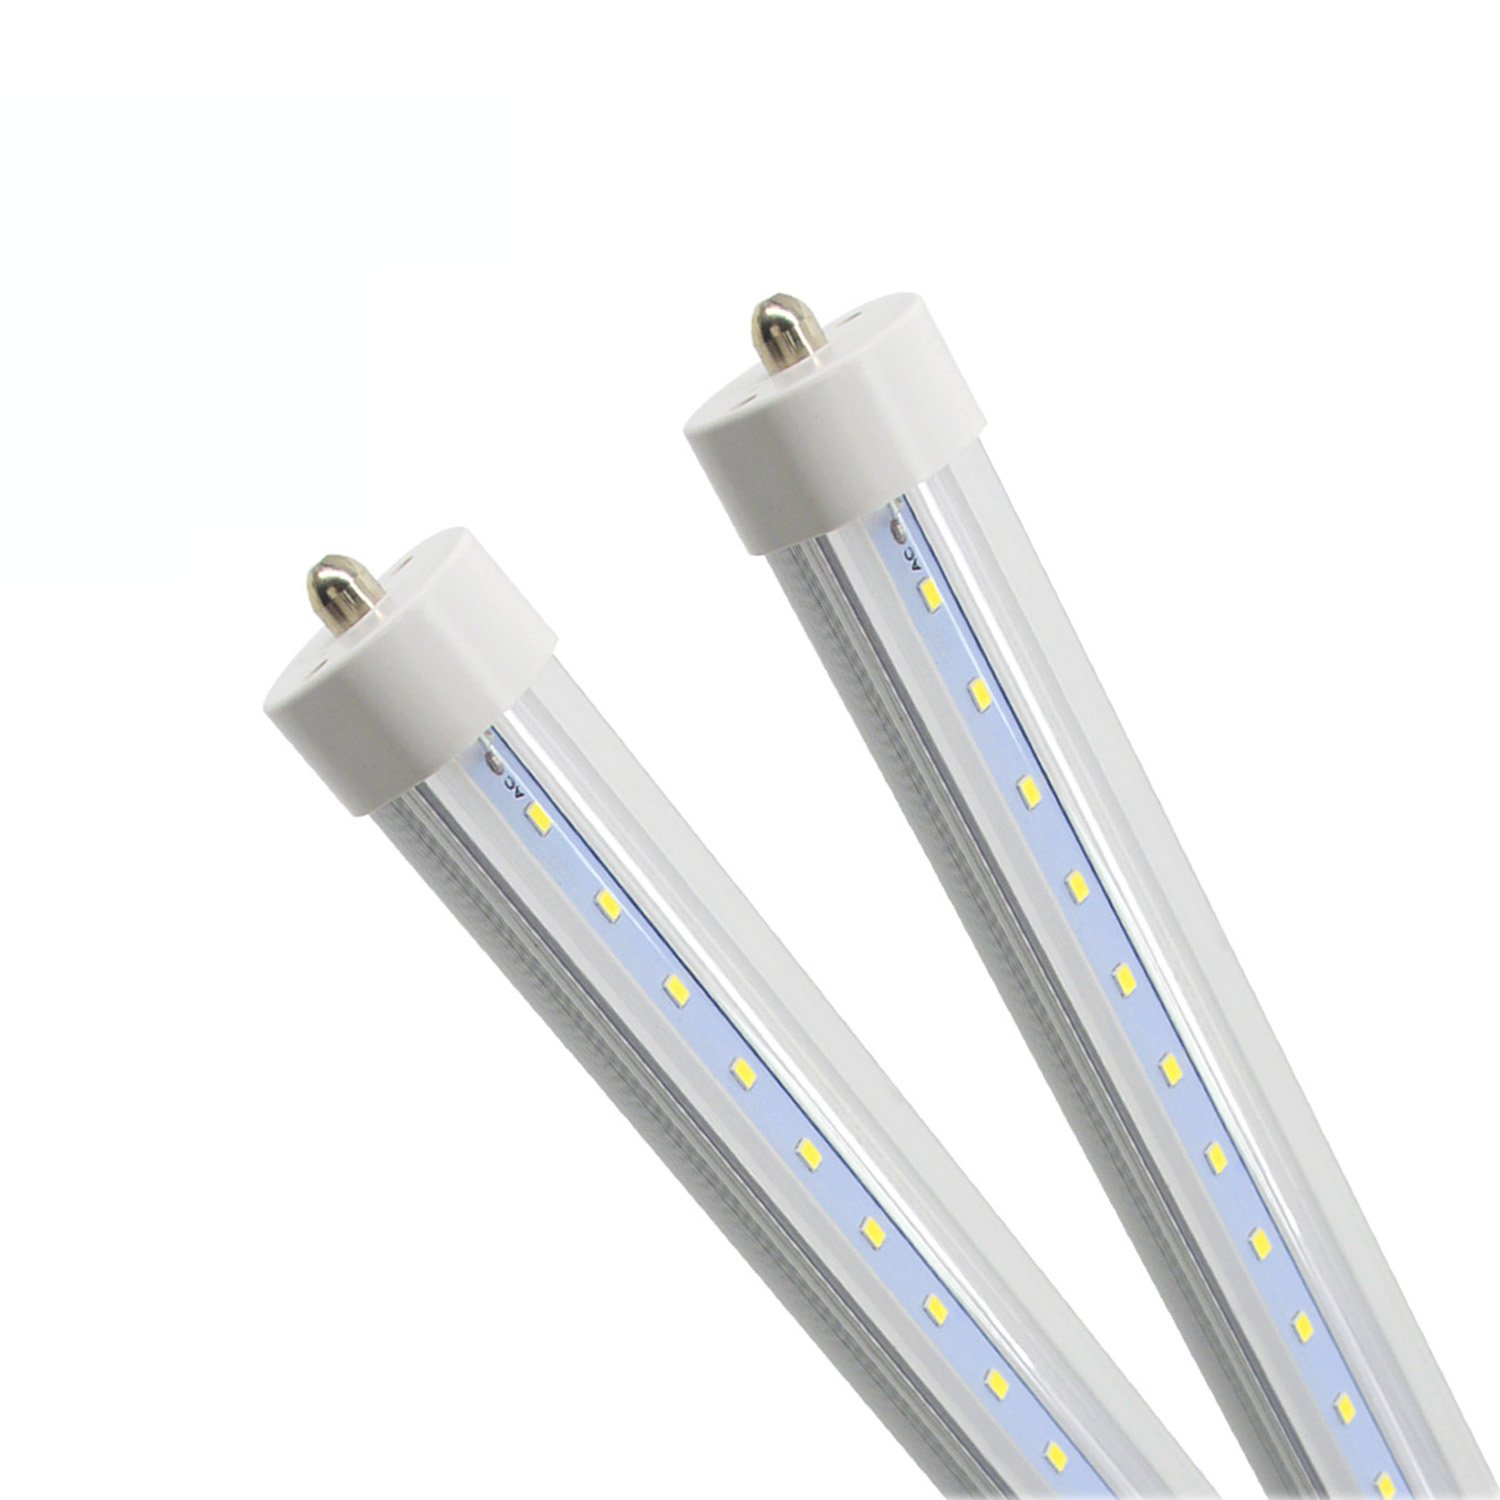 (Pack of 2) Cnsunway T8 T10 T12 LED Light Tube, 8ft, 45W (100W Equivalent), 6000K, 4500 Lumens, Clean Cover, Dual-Ended Power, Fluorescent Light Bulbs Replacement